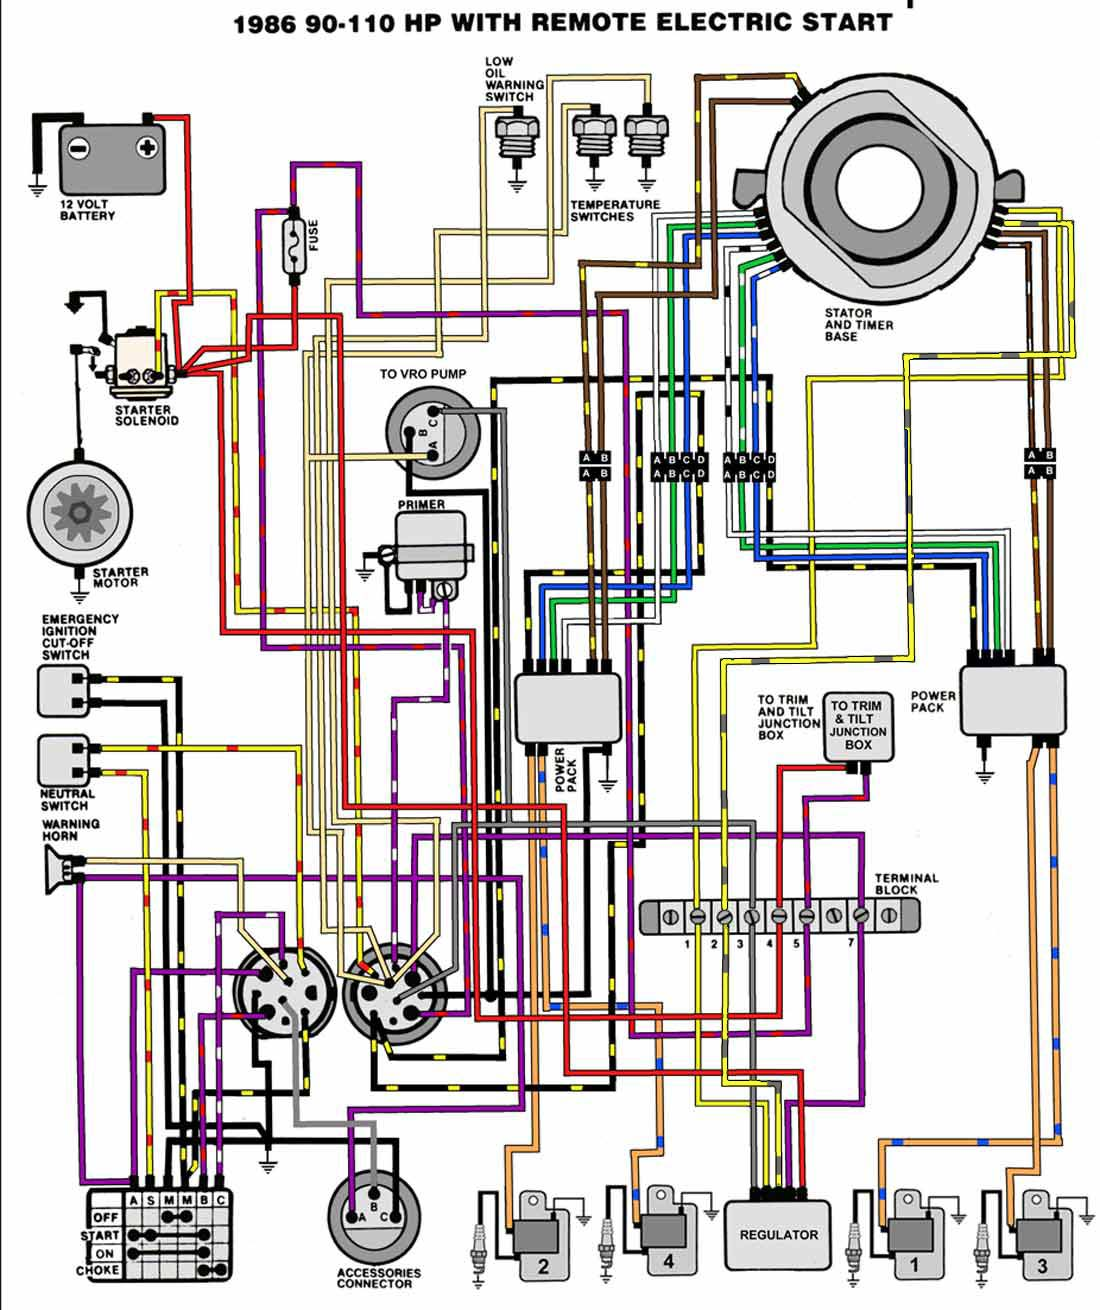 evinrude outboard motor parts diagram motorssite org evinrude starter spins but won't evinrude outboard electrical diagram house wiring symbols